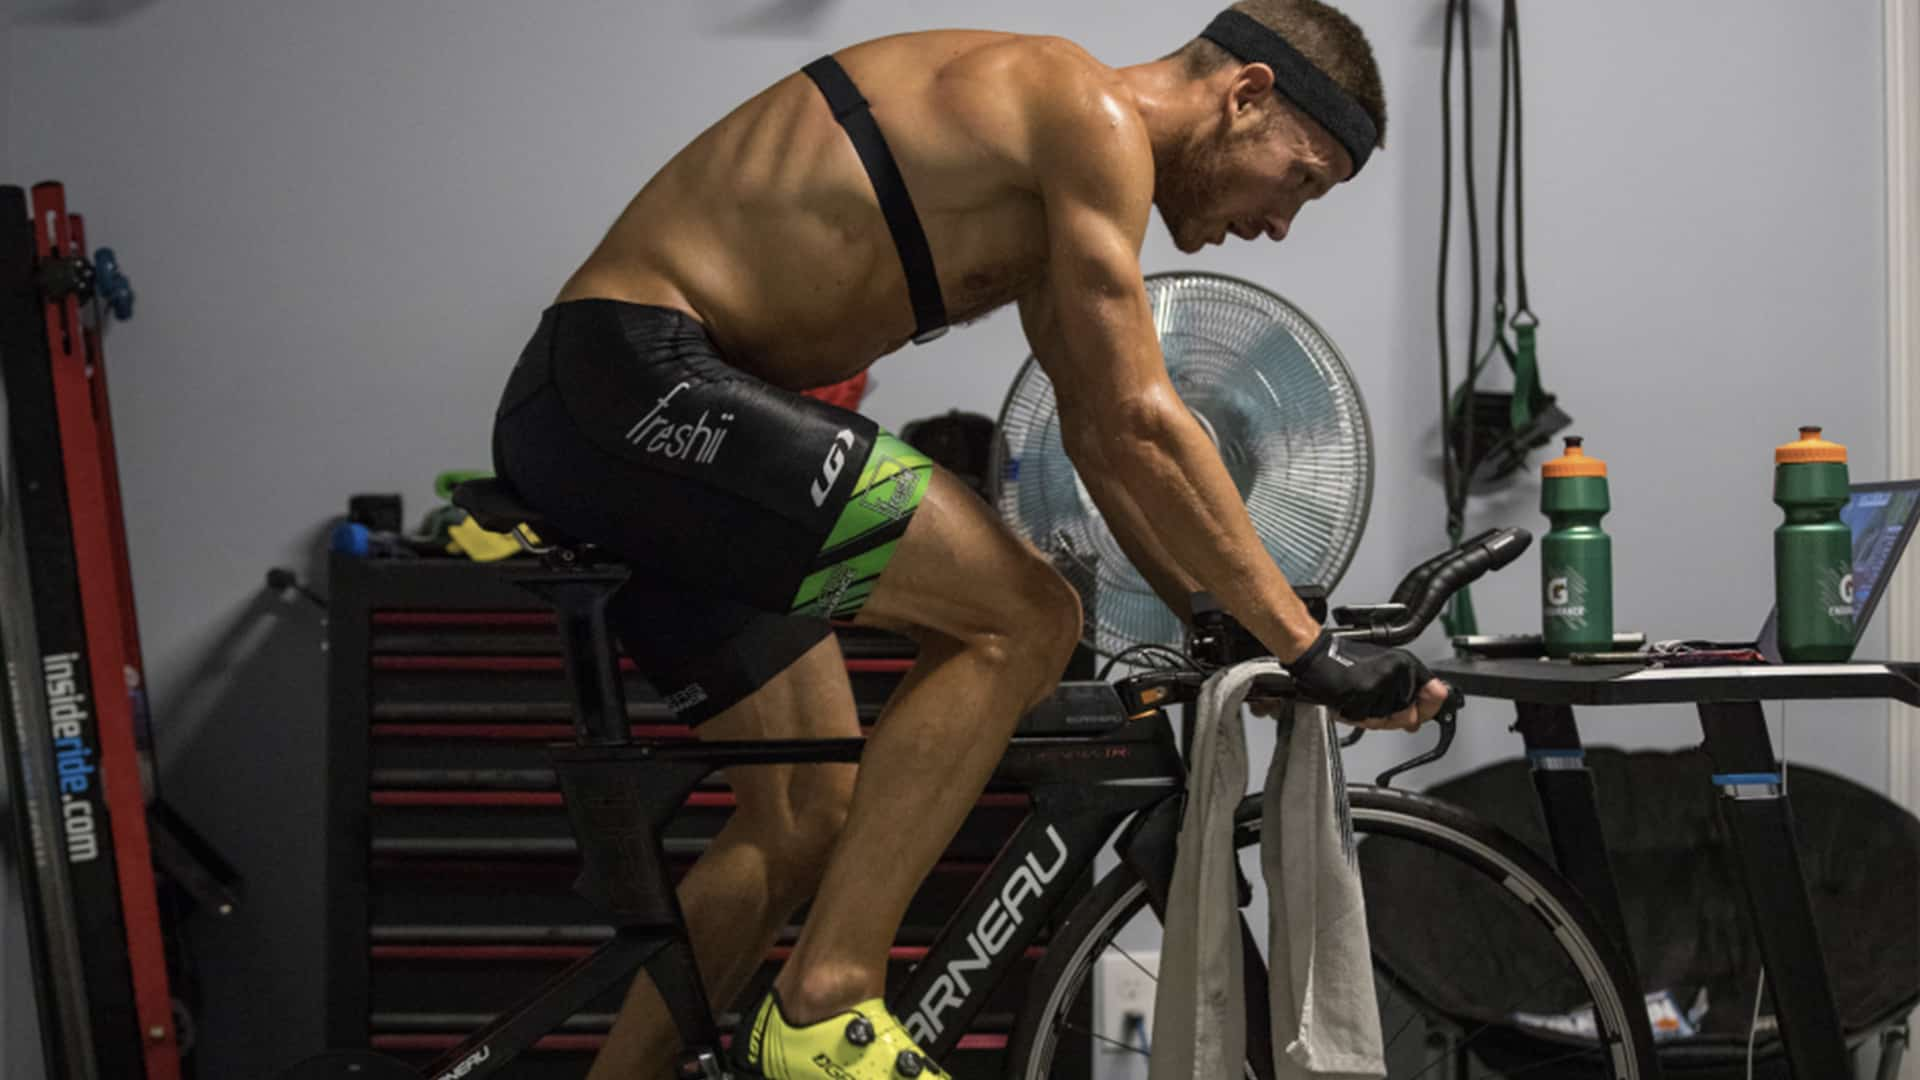 5 Indoor Cycling Workouts To Help You Love Your Trainer